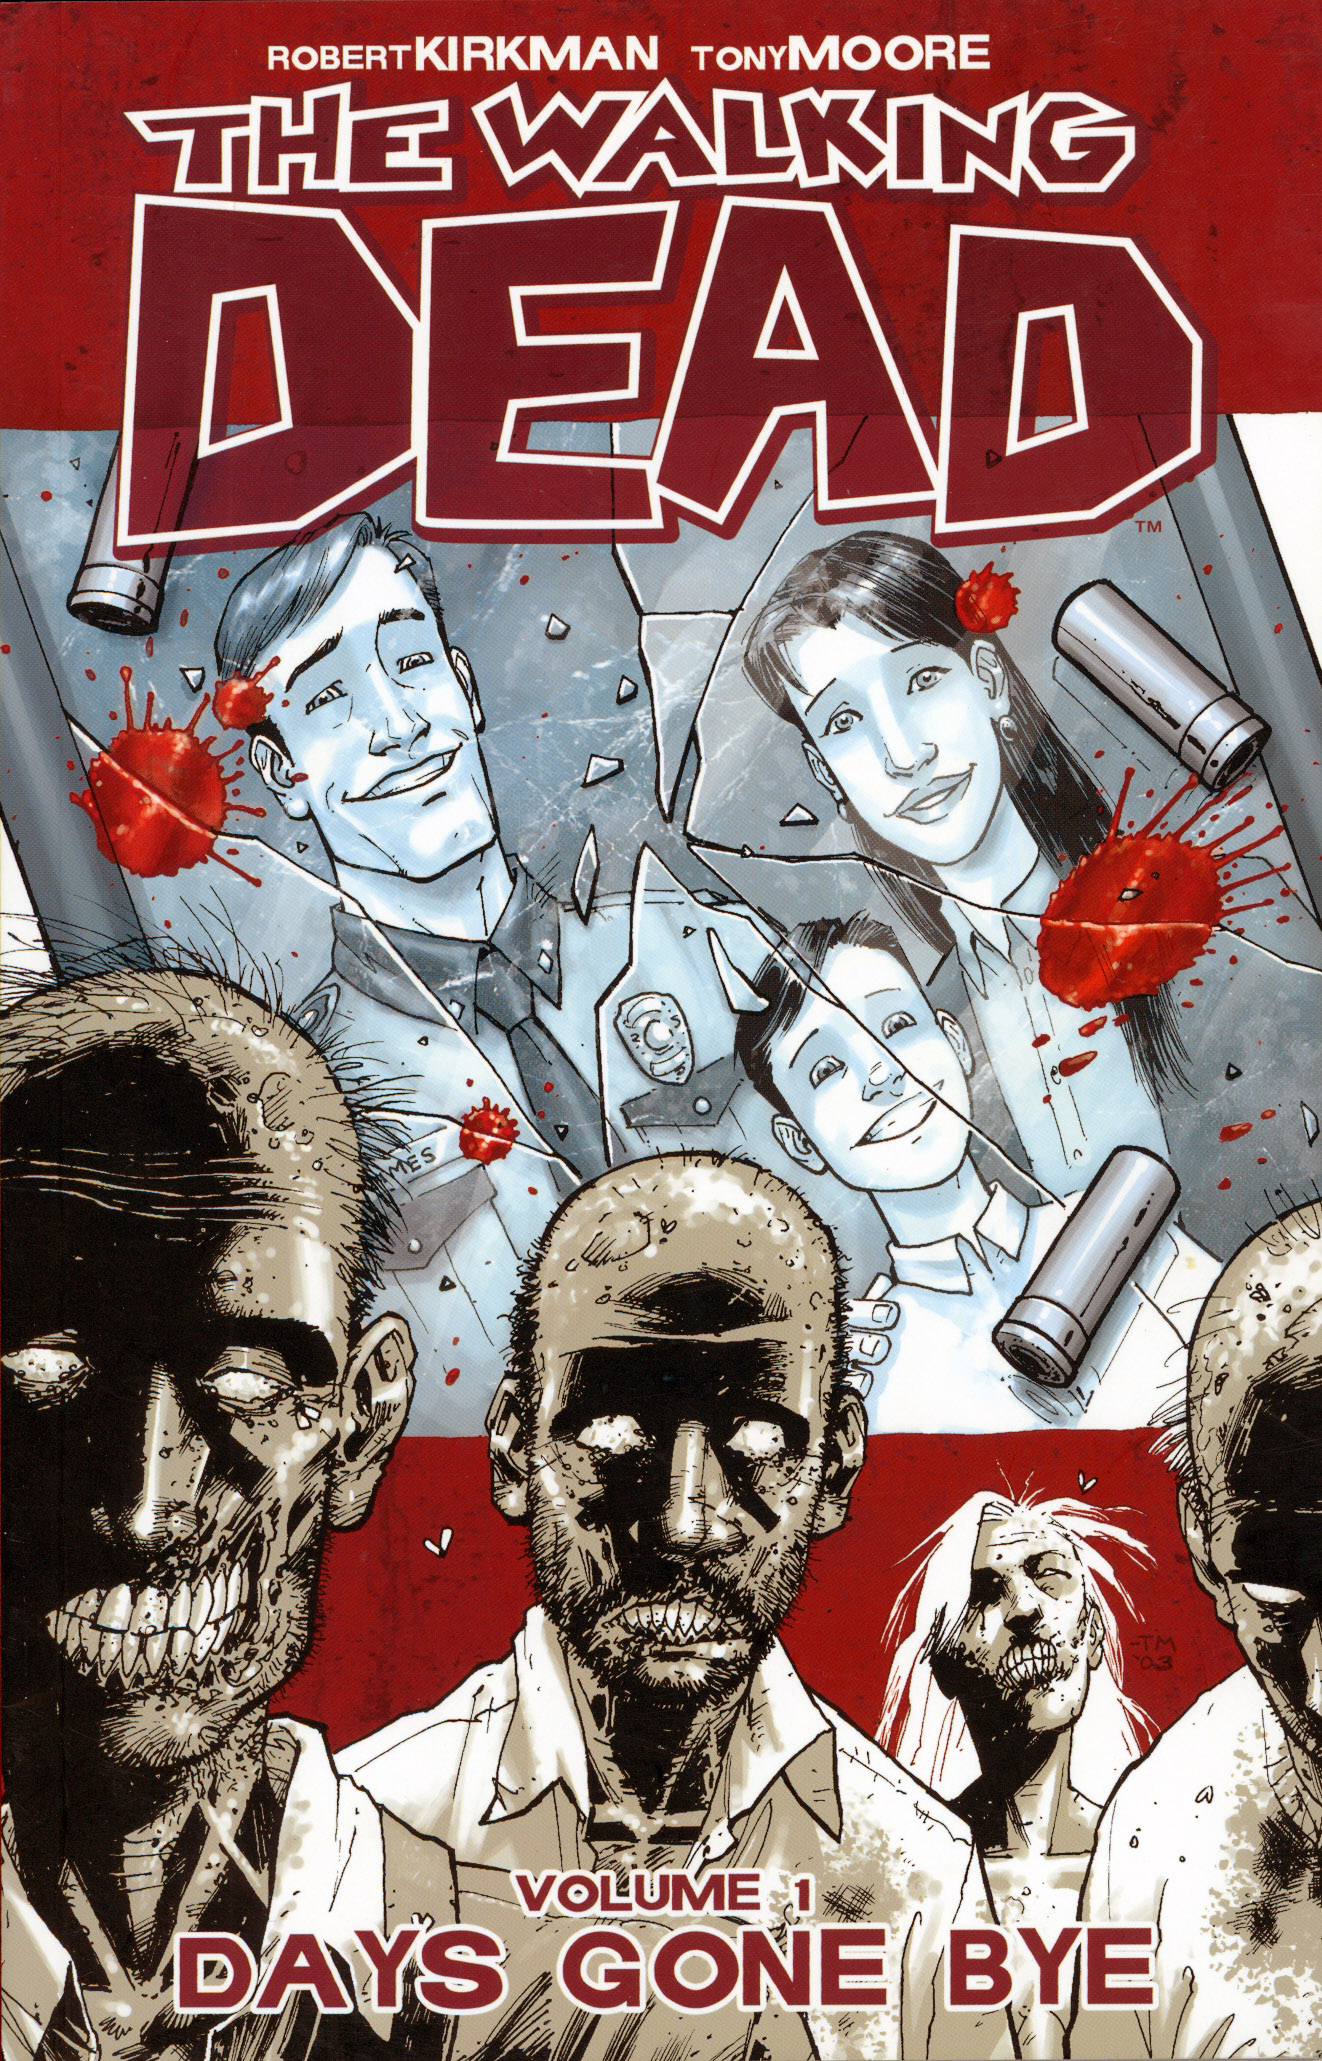 Monster Scifi Show The Walking Dead Volume 1 Graphic Novel Review tuRa0E0R